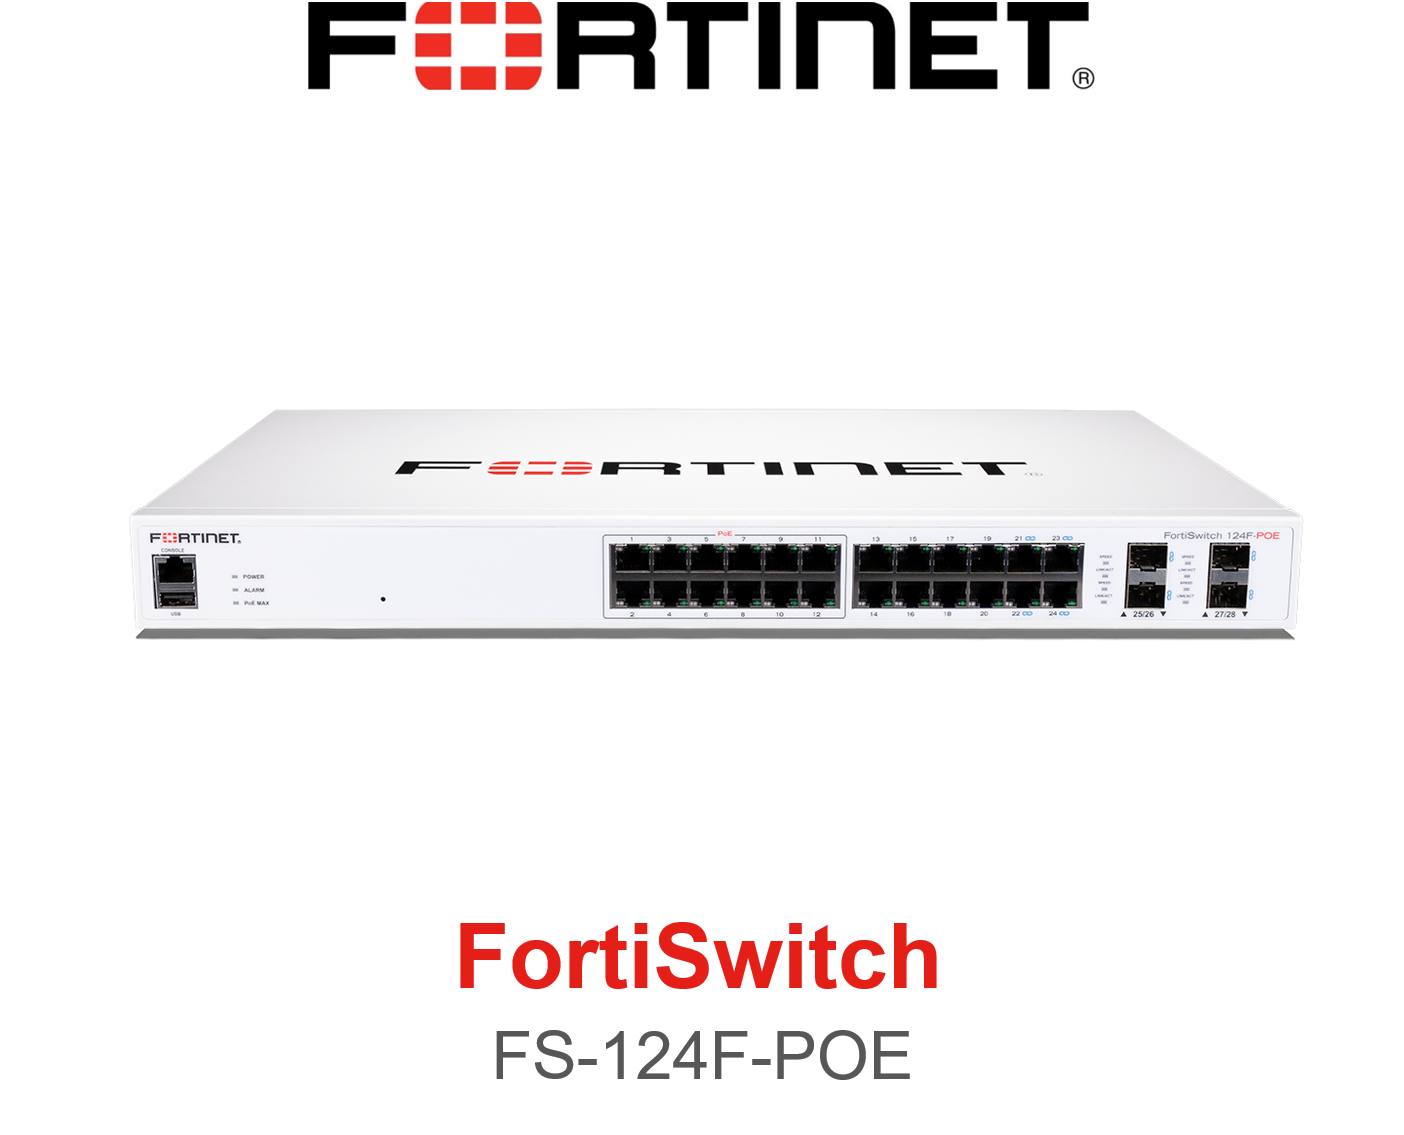 Fortinet FortiSwitch 124F POE